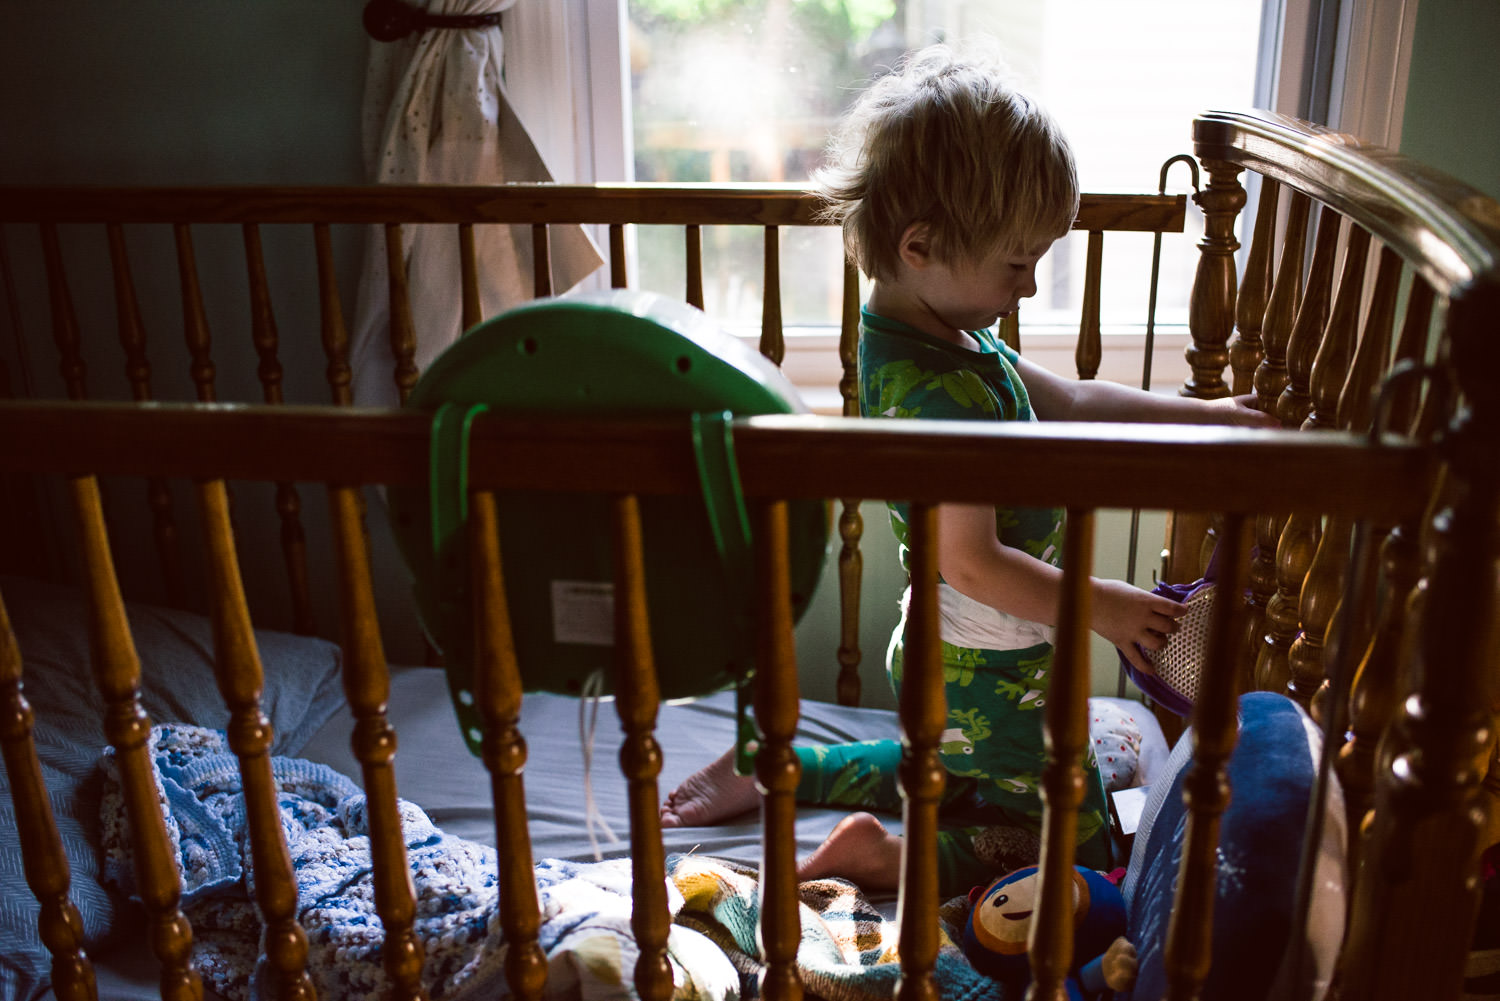 A little boy plays in his crib.